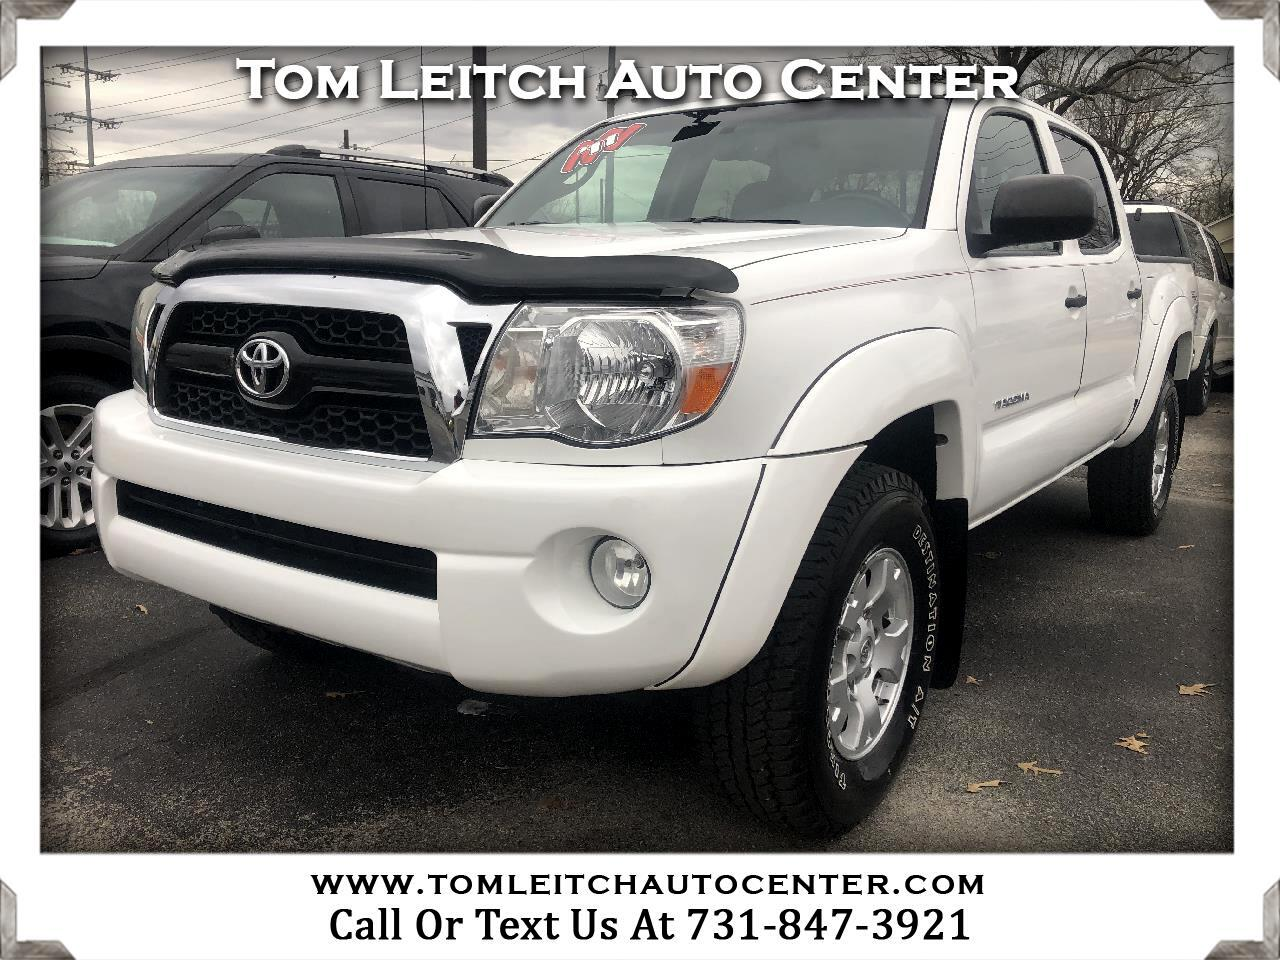 2011 Toyota Tacoma 4WD DOUBLE CAB TRD OFFROAD